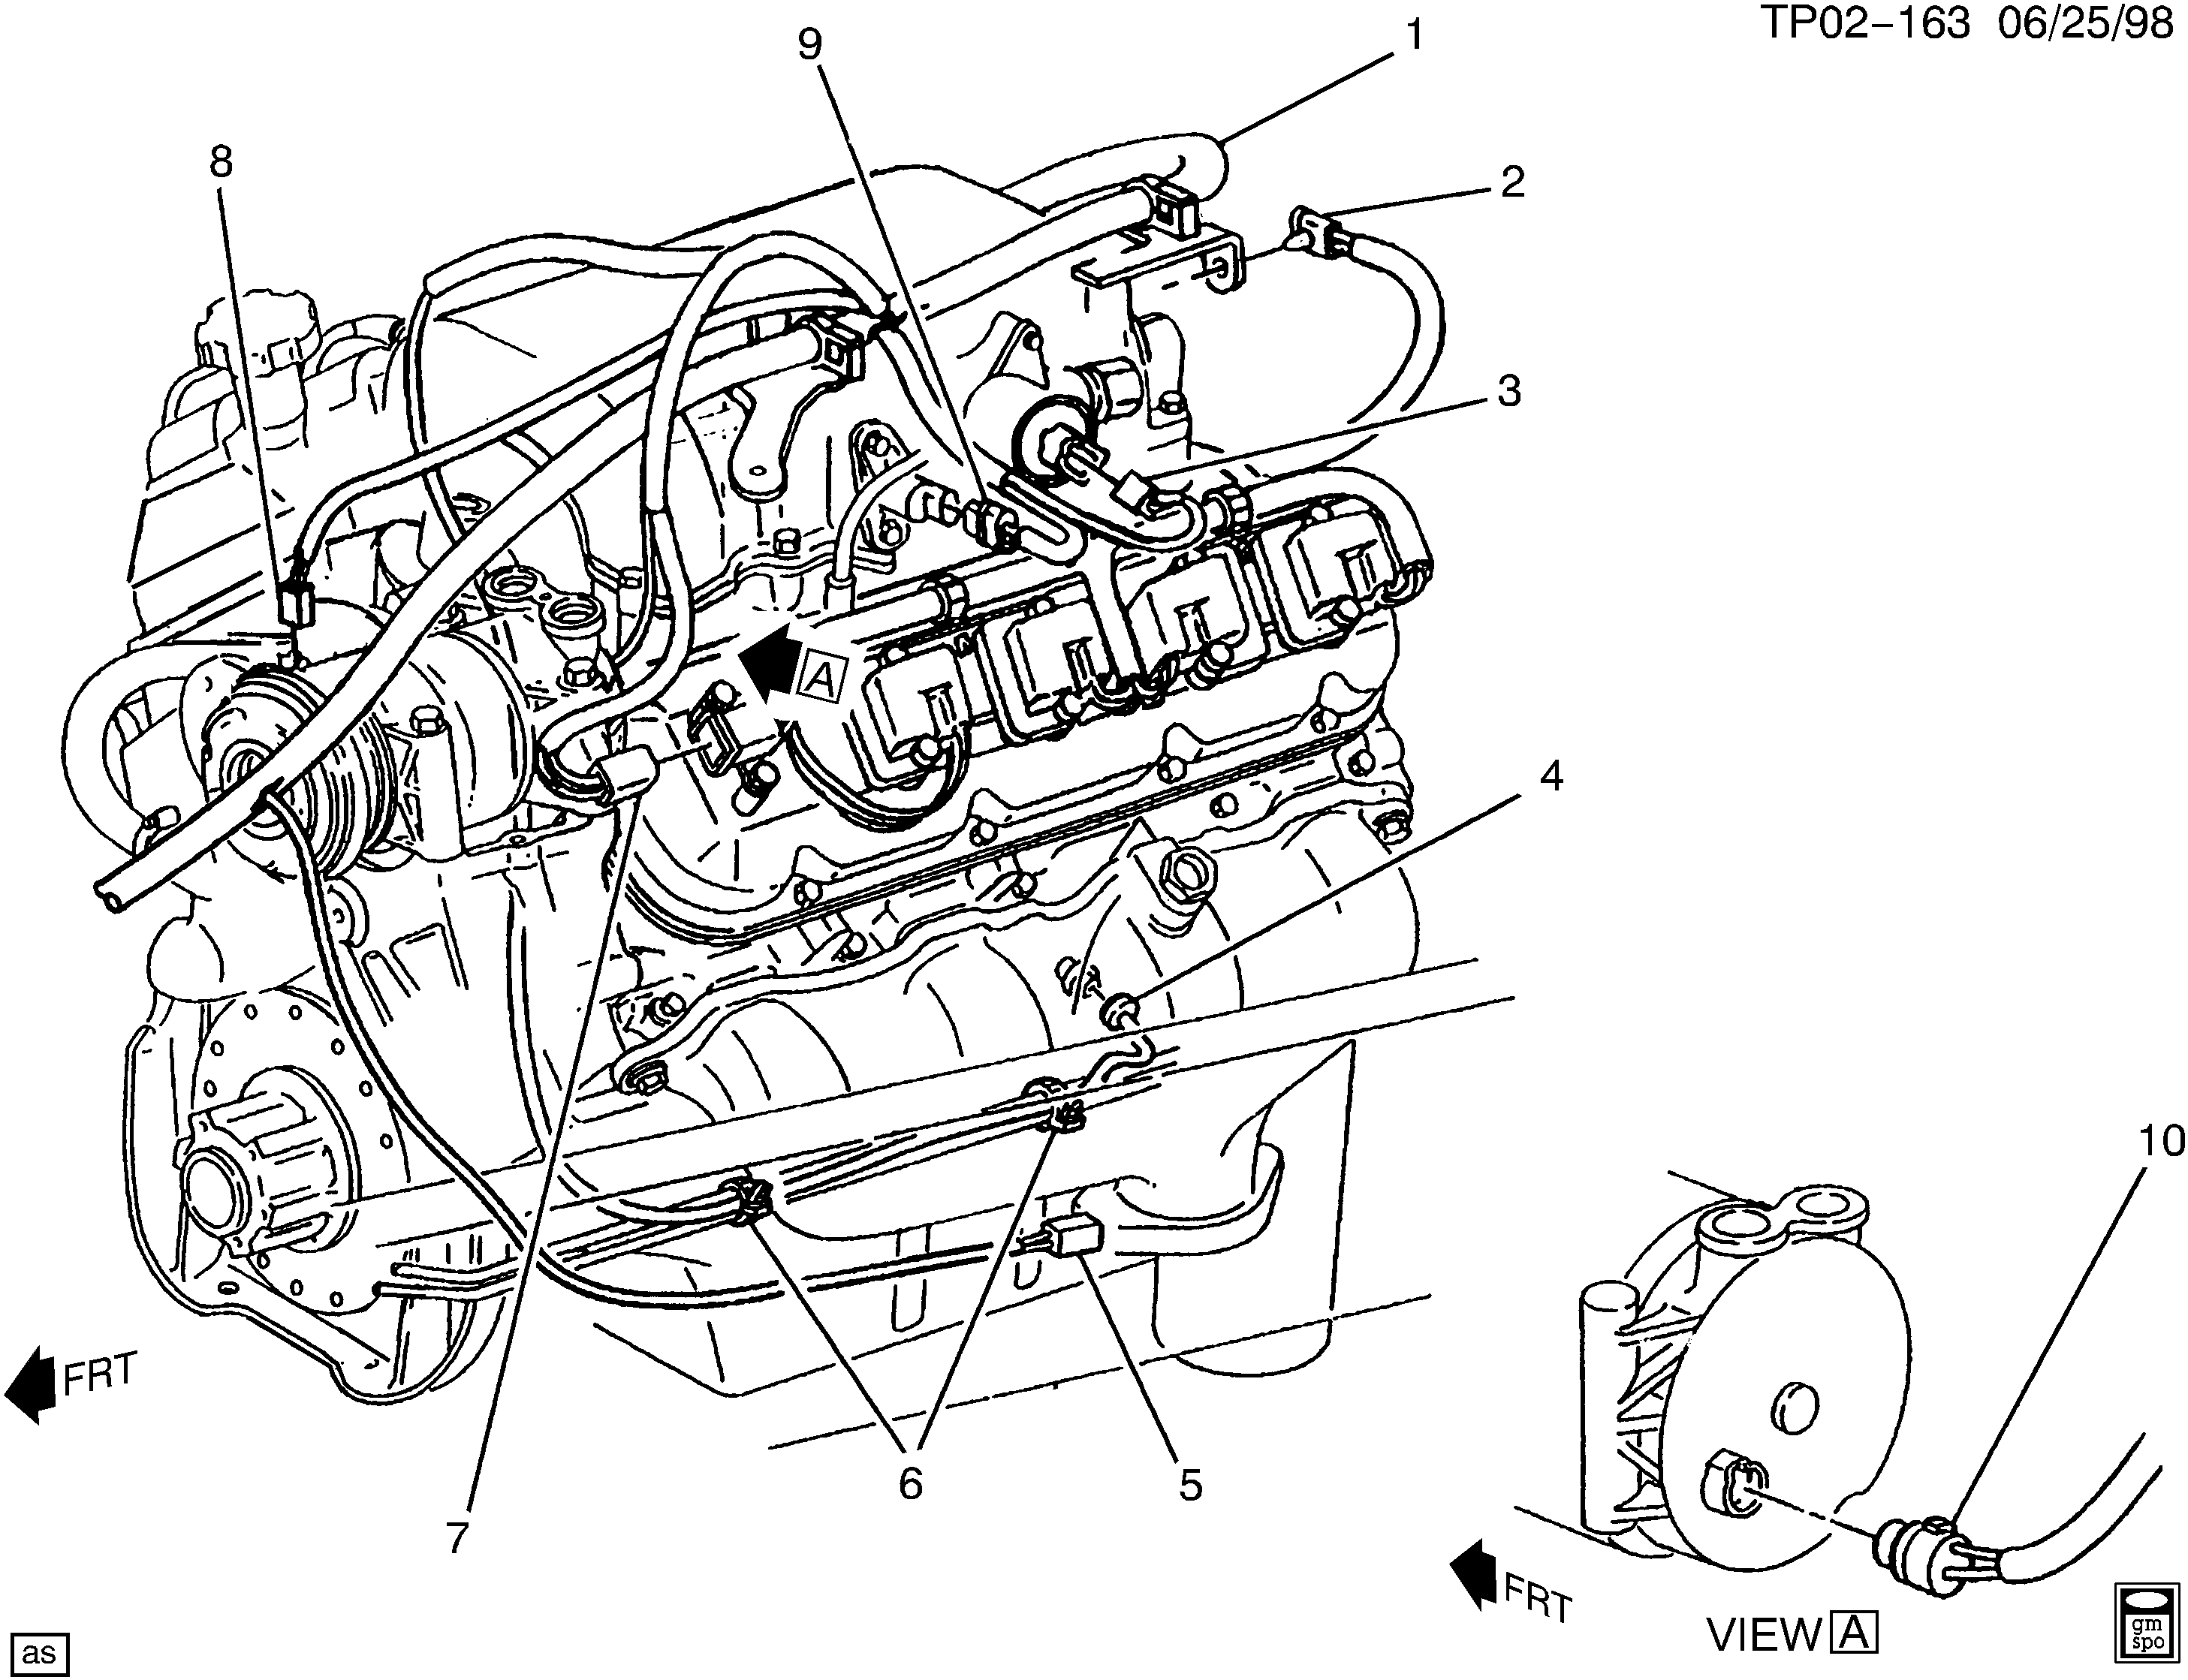 p30 van  engine part 4  u0026gt  chevrolet epc